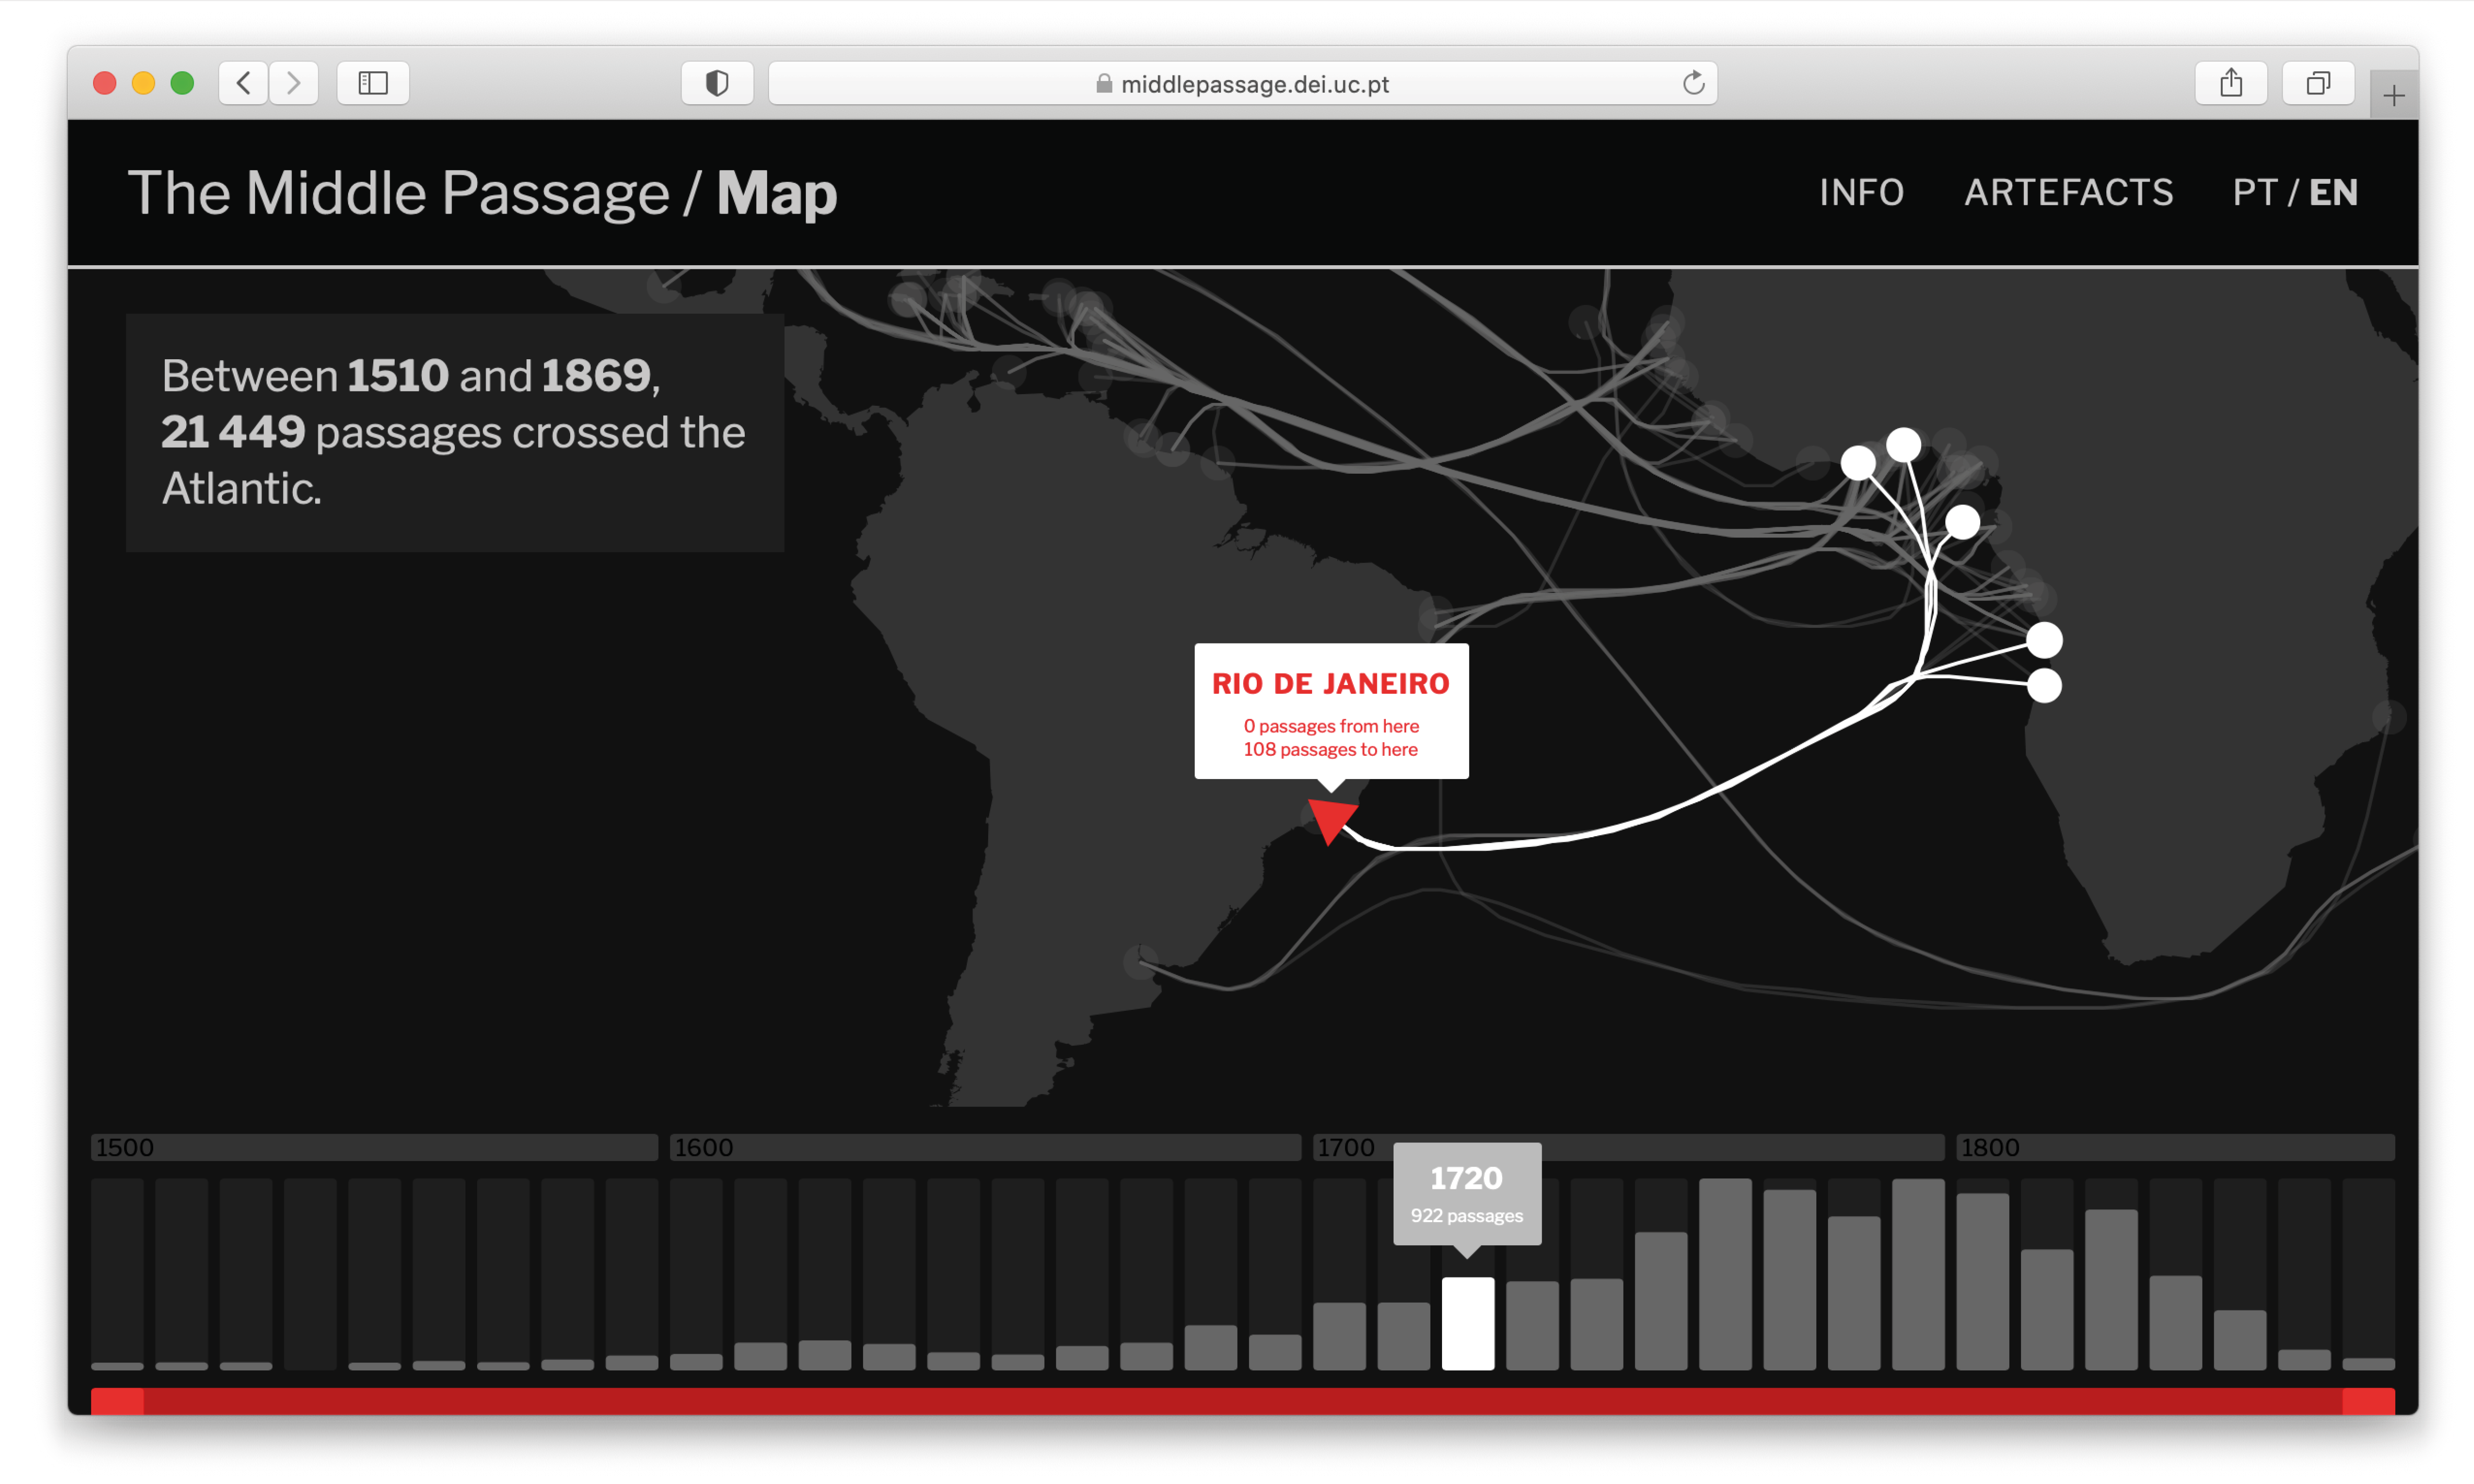 Screenshot of the interactive map that shows the passages that arrived at Rio de Janeiro in 1720.